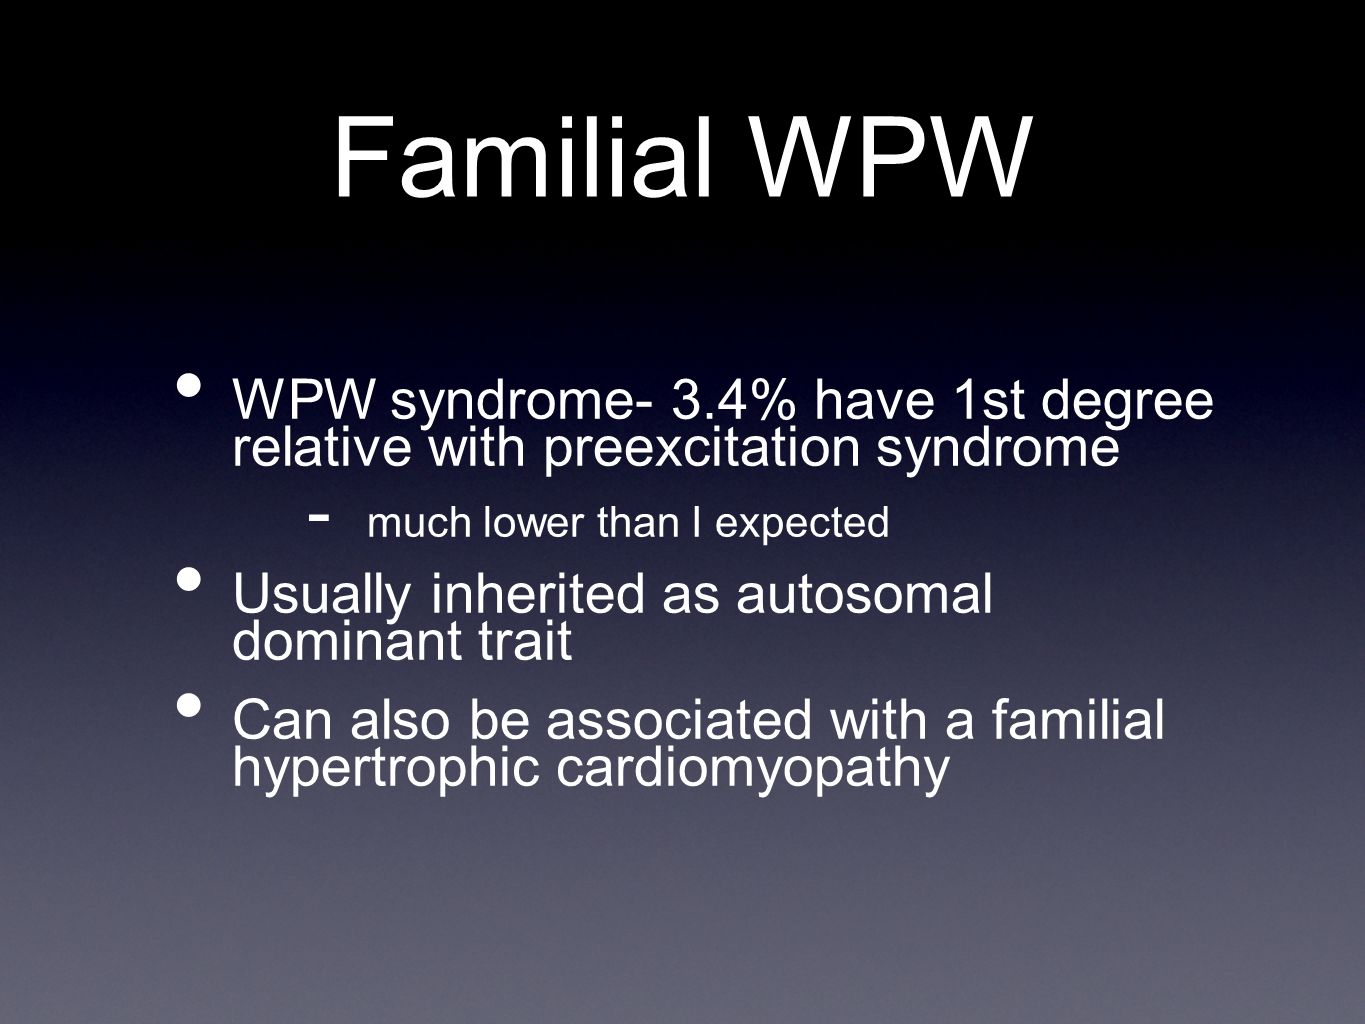 Familial WPW WPW syndrome- 3.4% have 1st degree relative with preexcitation syndrome. much lower than I expected.